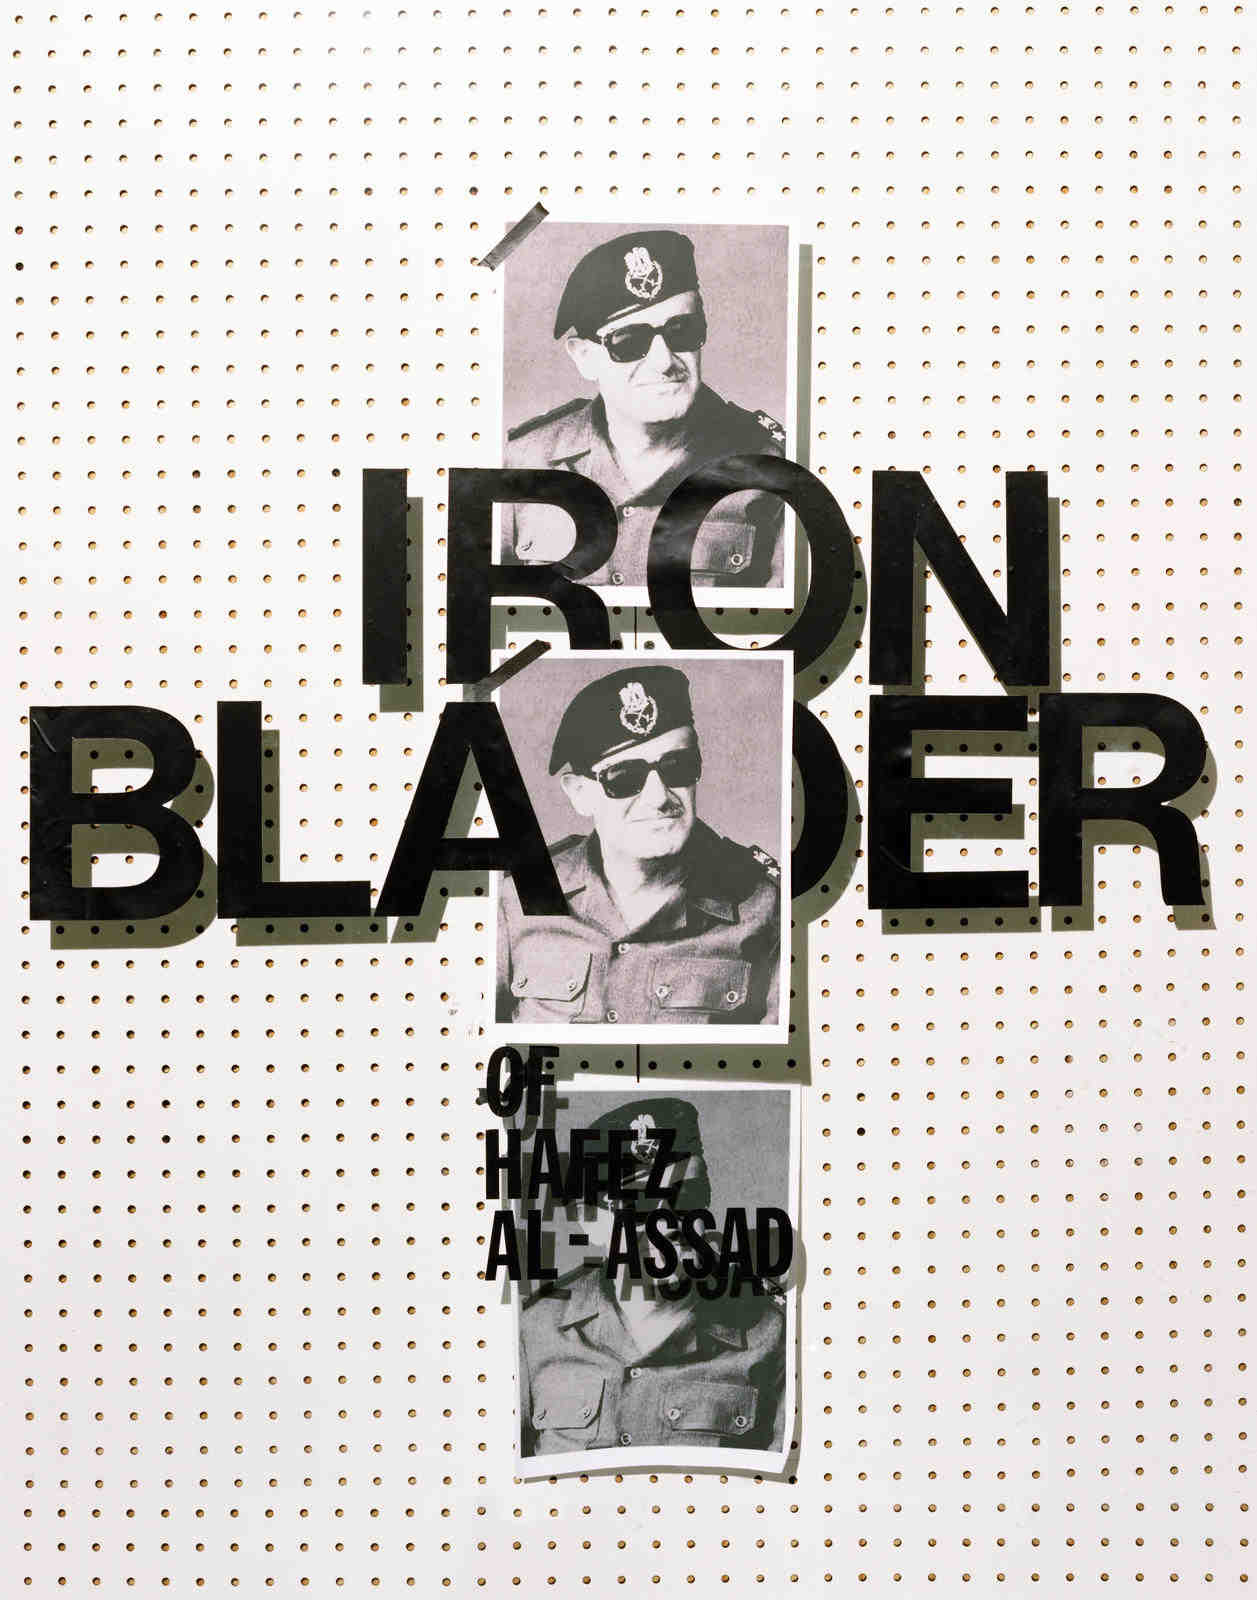 Ironbladxder2 cover lo res